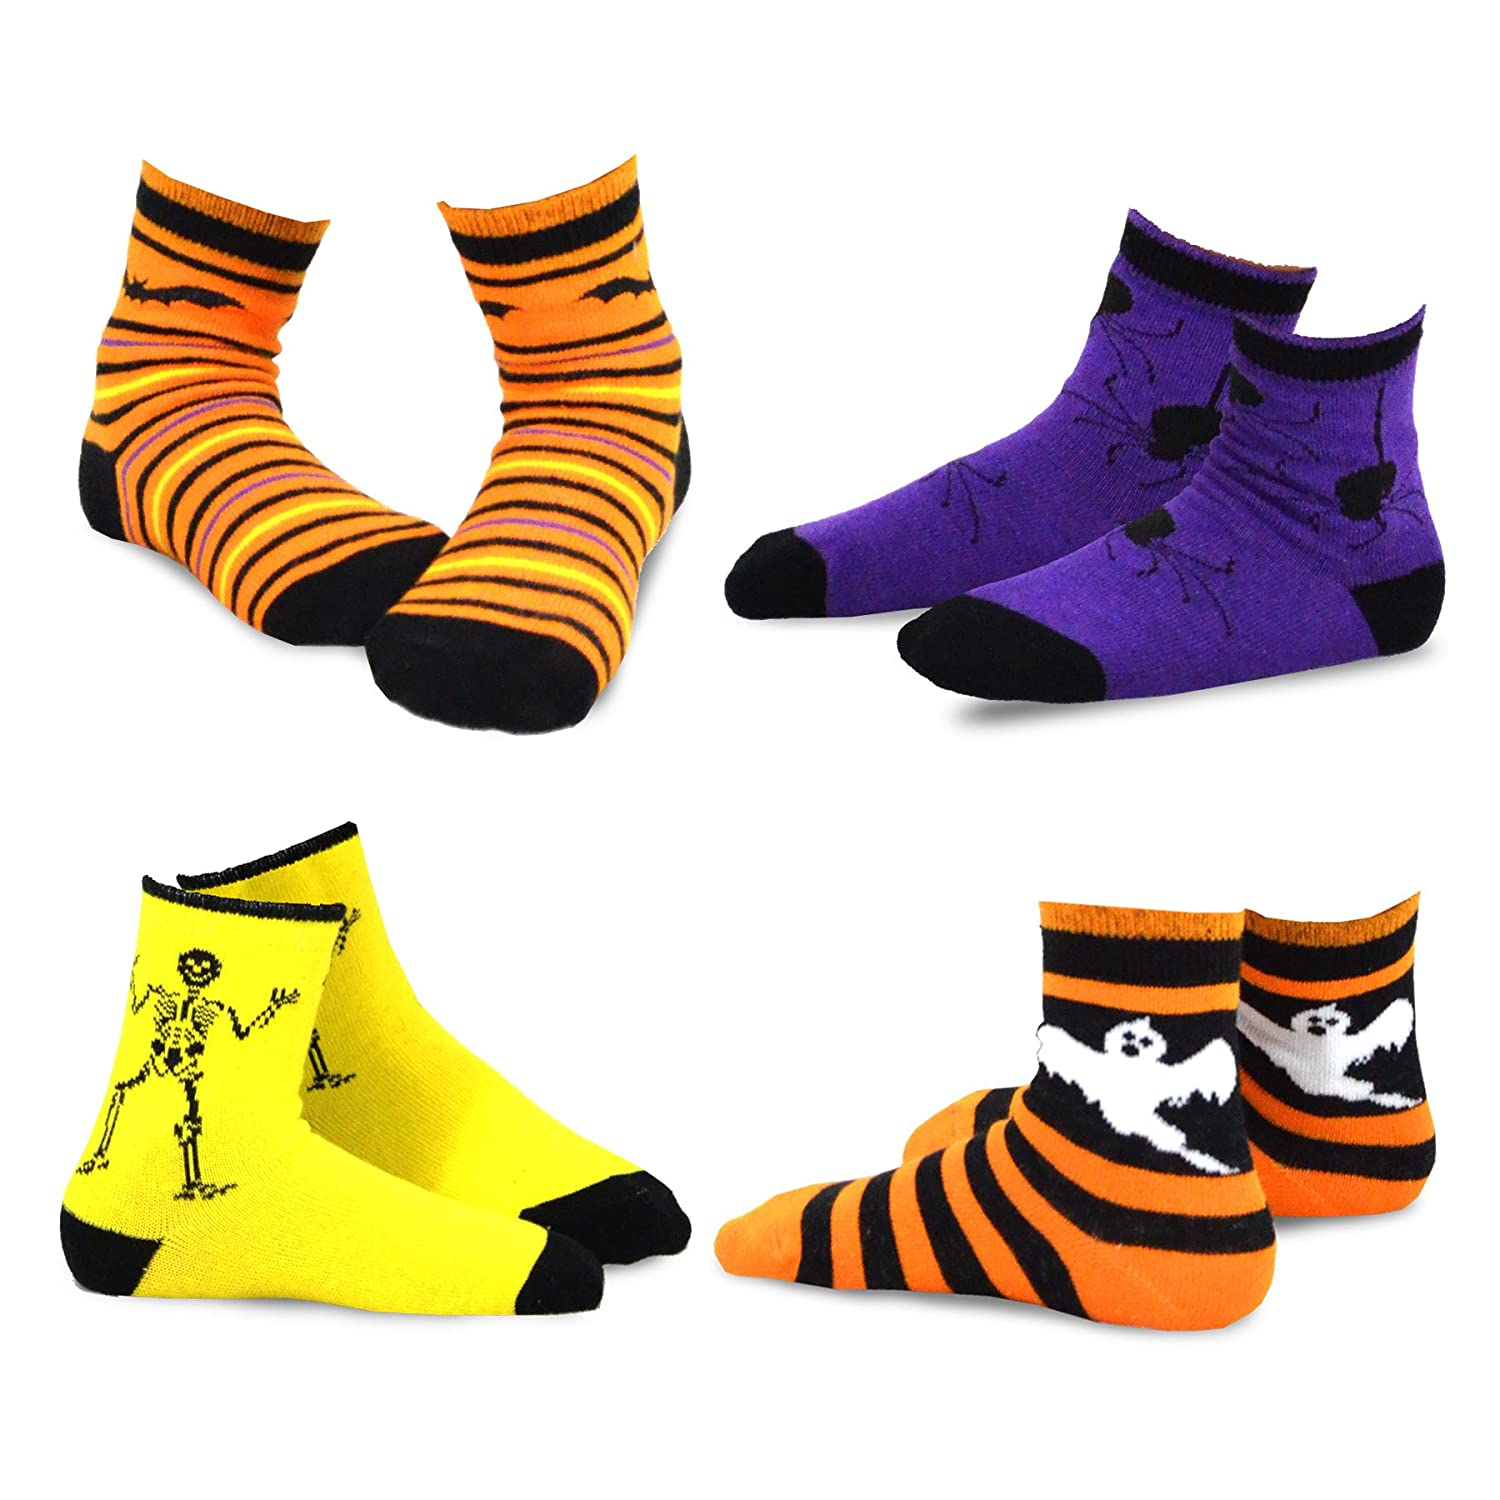 TeeHee Halloween Kids Cotton Fun Crew Socks 4-Pair Pack